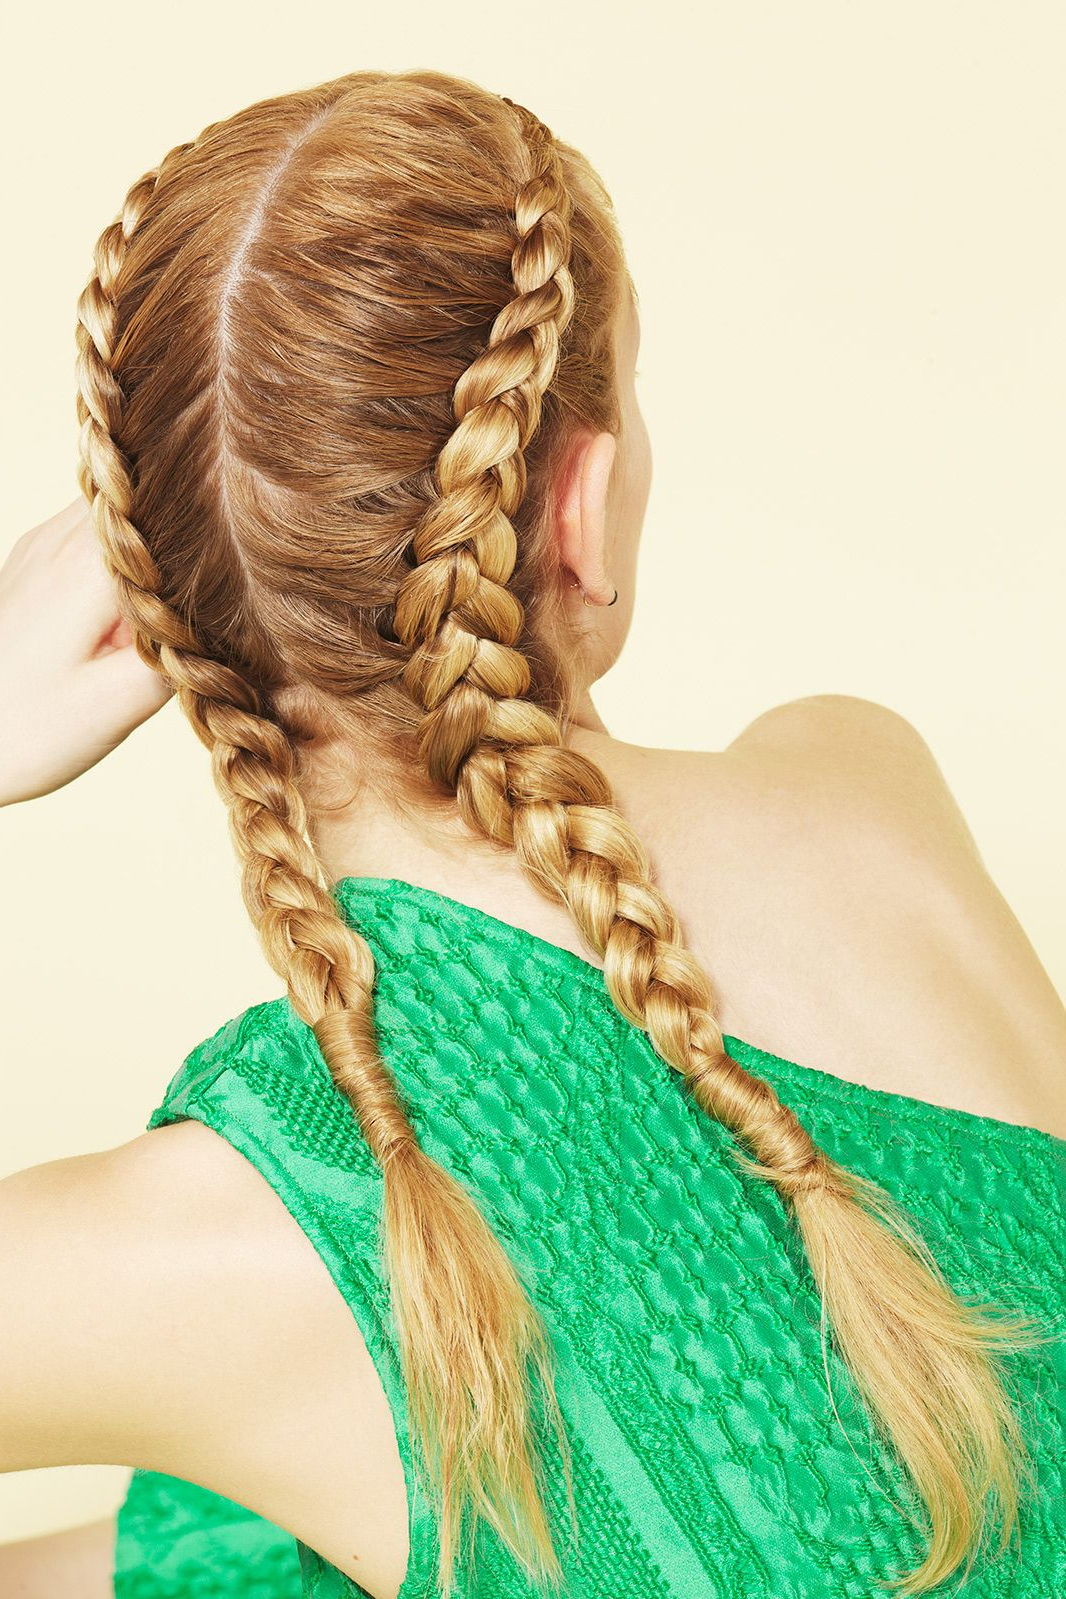 How To Braid Your Hair 5 New Ways In Well Known Braided Underside Hairstyles (View 17 of 20)